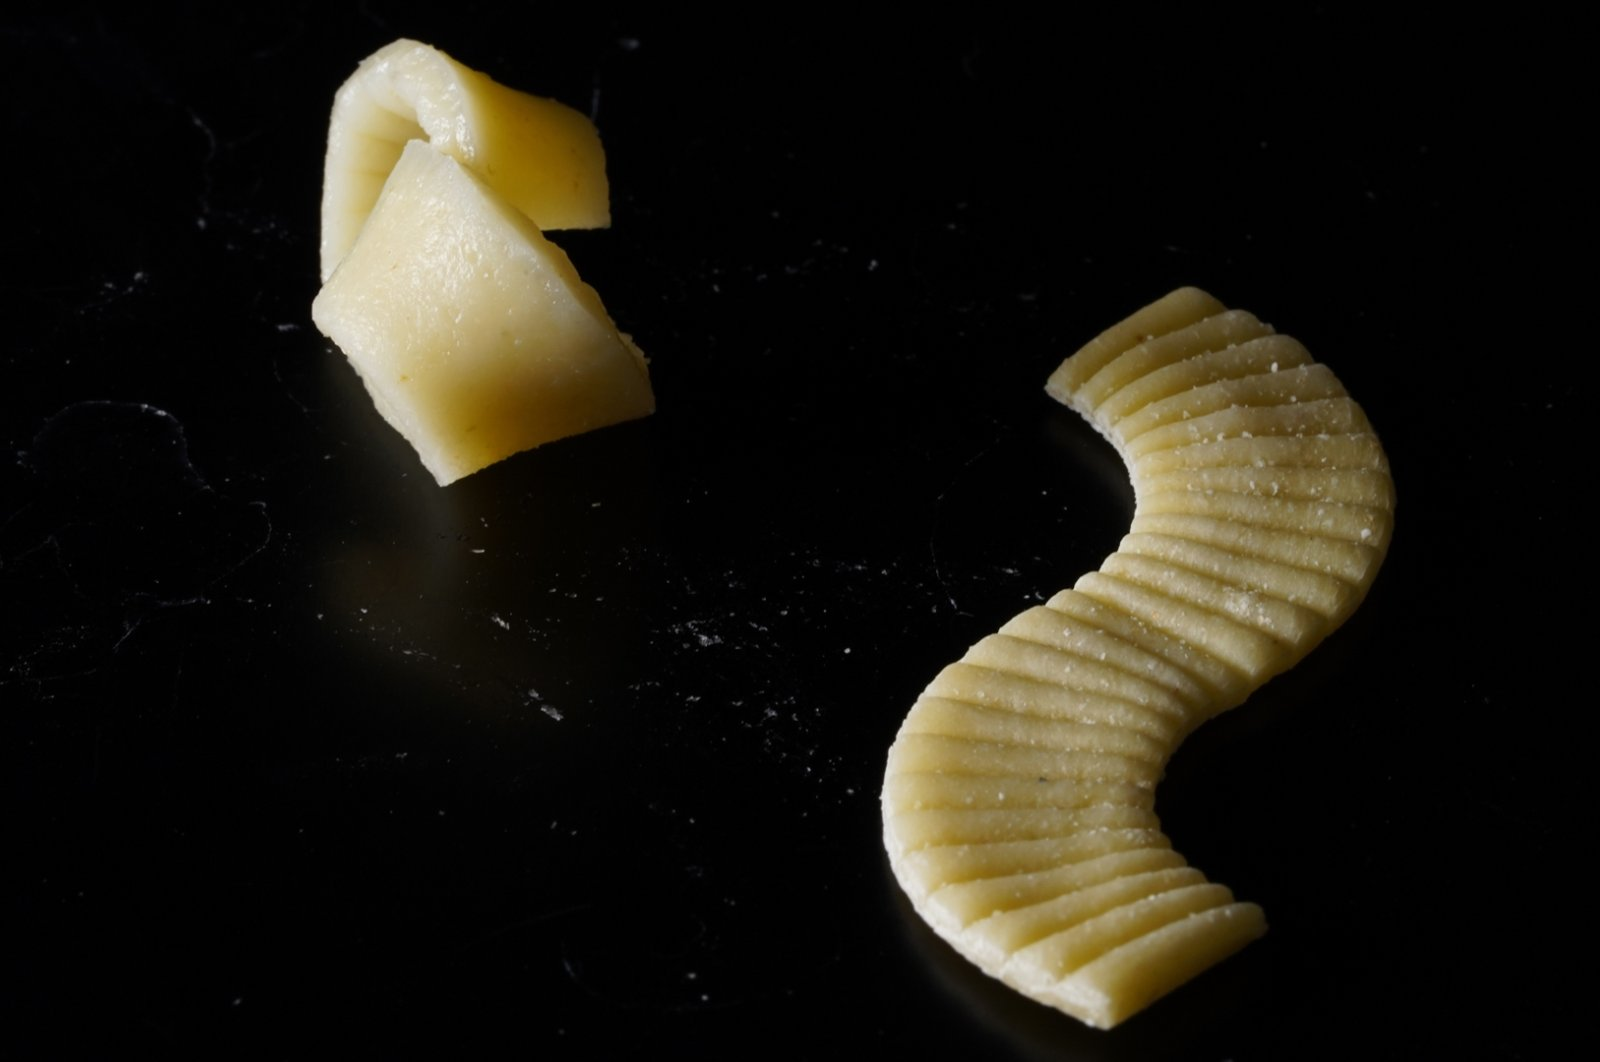 Cooked (L) and uncooked (R): This flat piece of pasta developed in a research laboratory unfolds into a 3D shape during cooking. (Morphing Matter Lab/Carnegie Mellon University/dpa Photo)